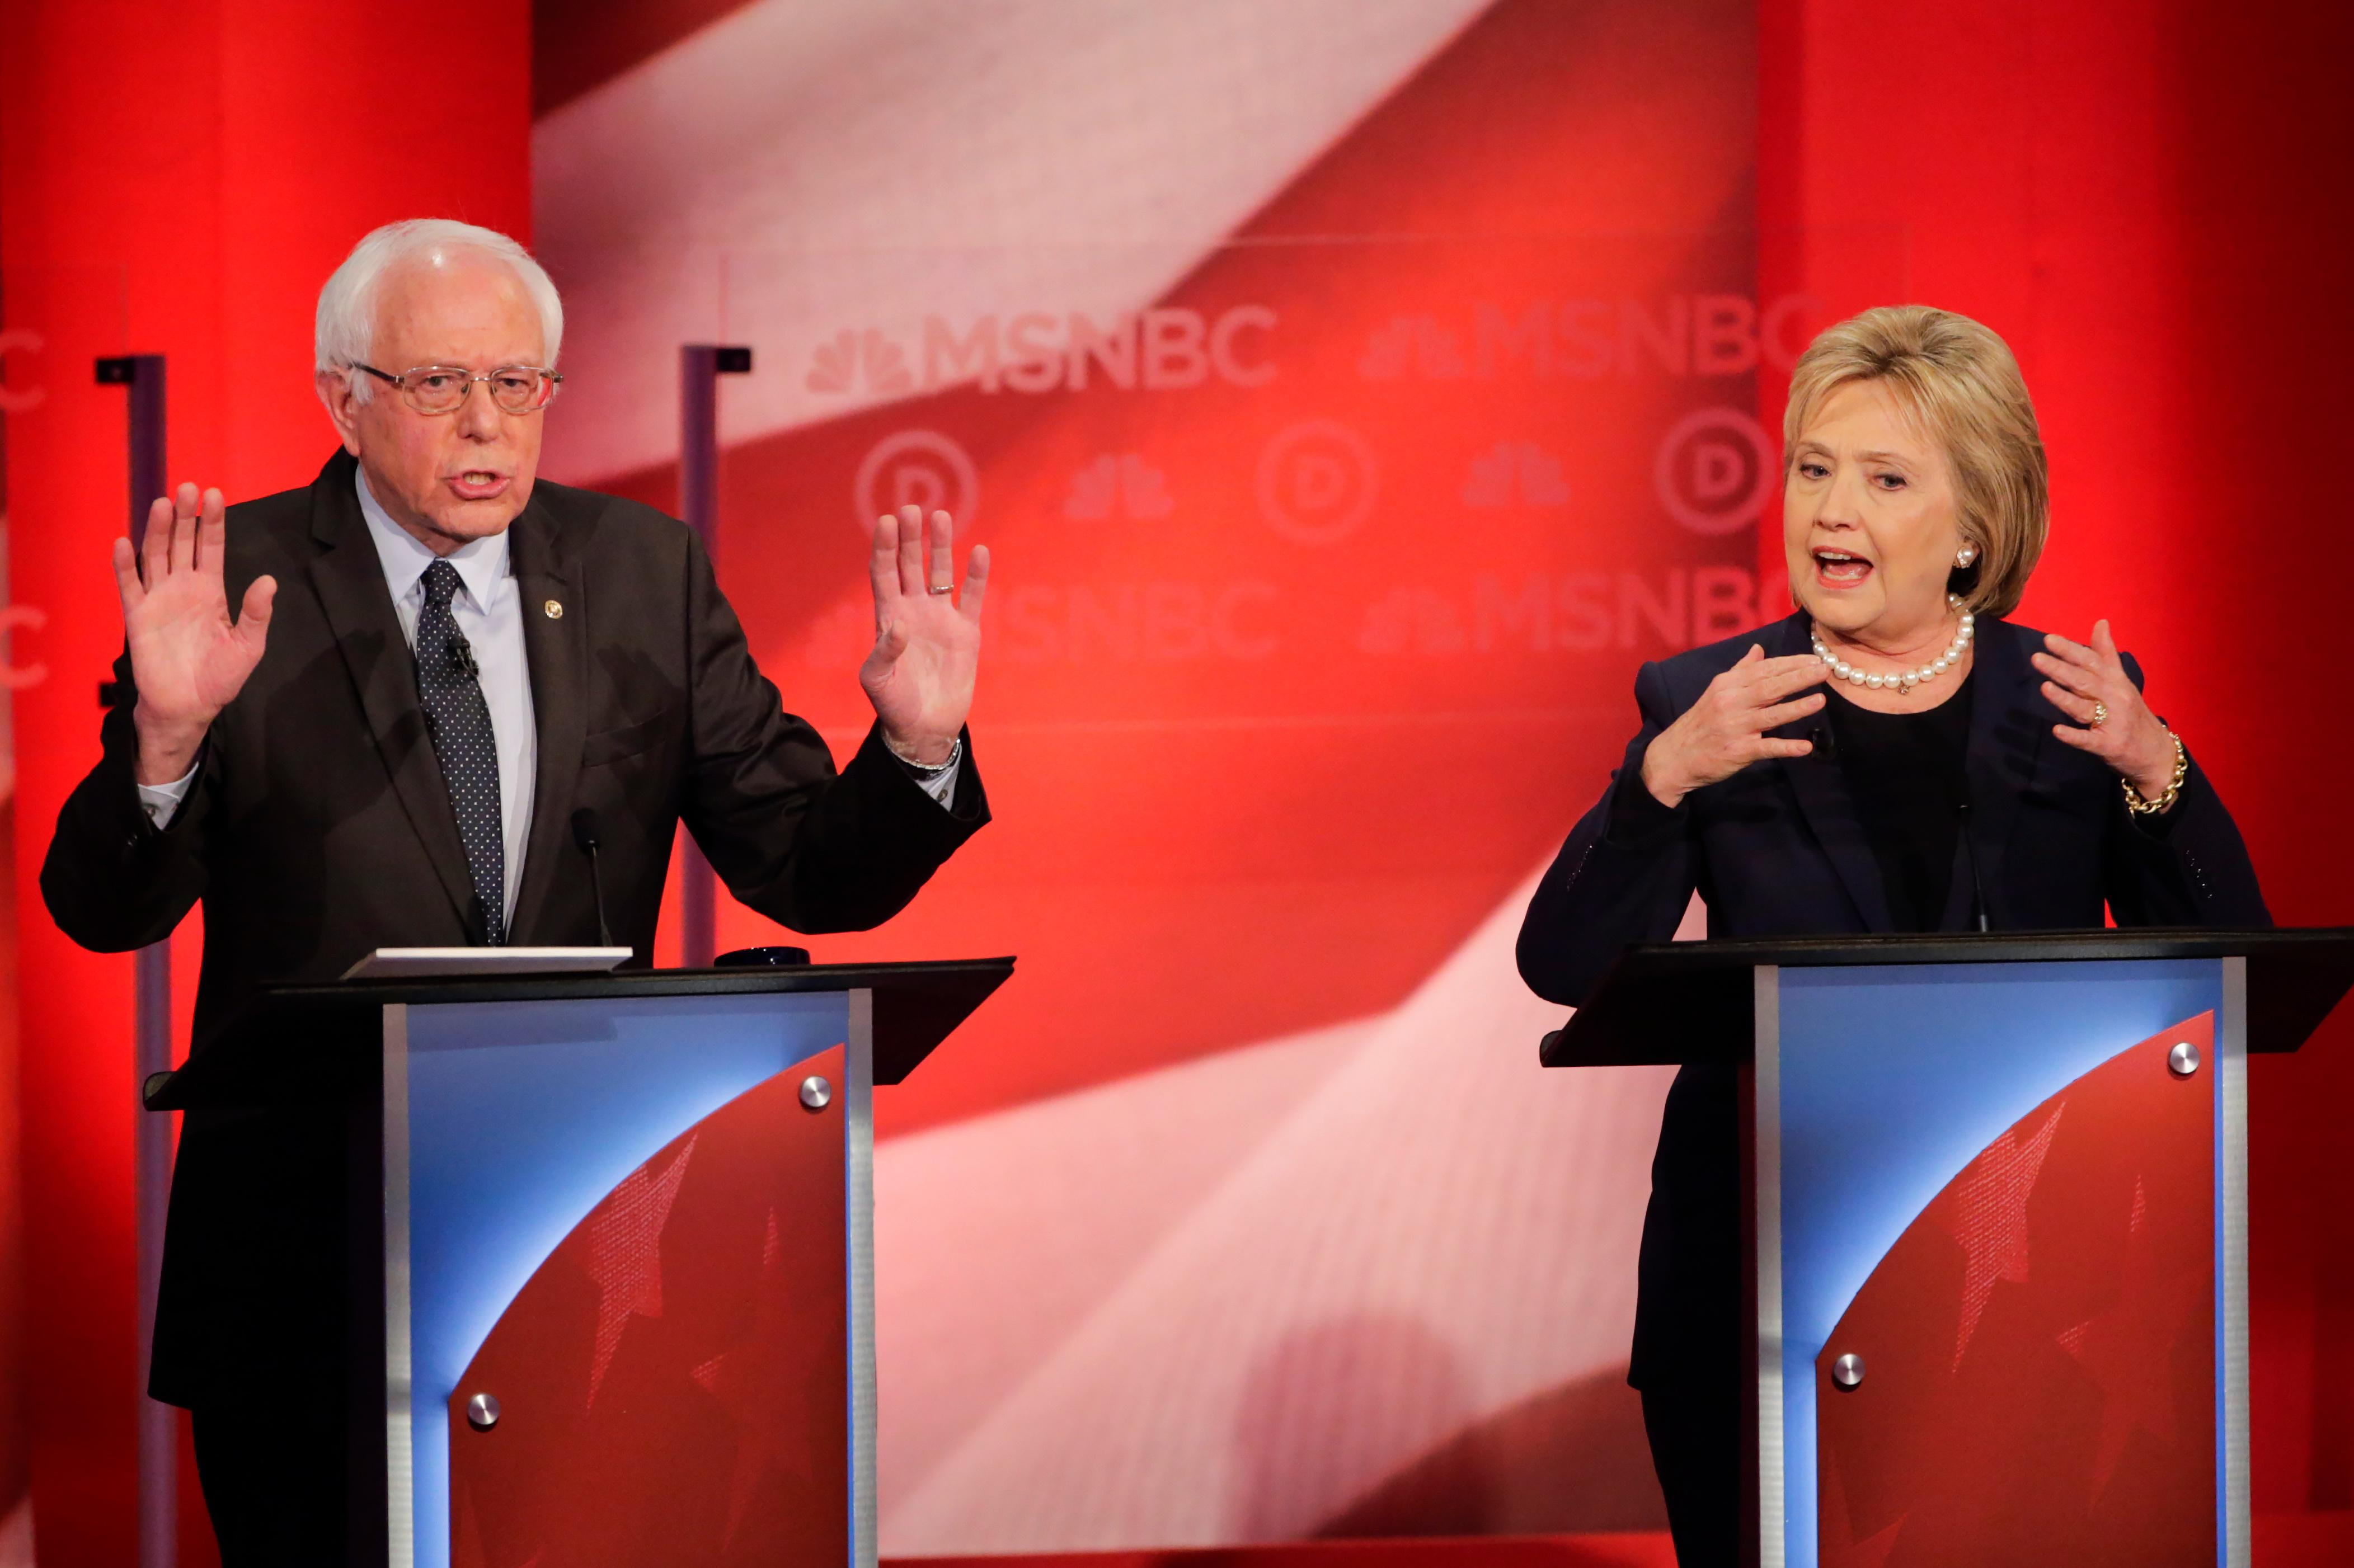 Democratic presidential candidate, Sen. Bernie Sanders, I-Vt,  and Democratic presidential candidate, Hillary Clinton spar during a Democratic presidential primary debate hosted by MSNBC at the University of New Hampshire Thursday, Feb. 4, 2016, in Durham, N.H. (AP Photo/David Goldman)